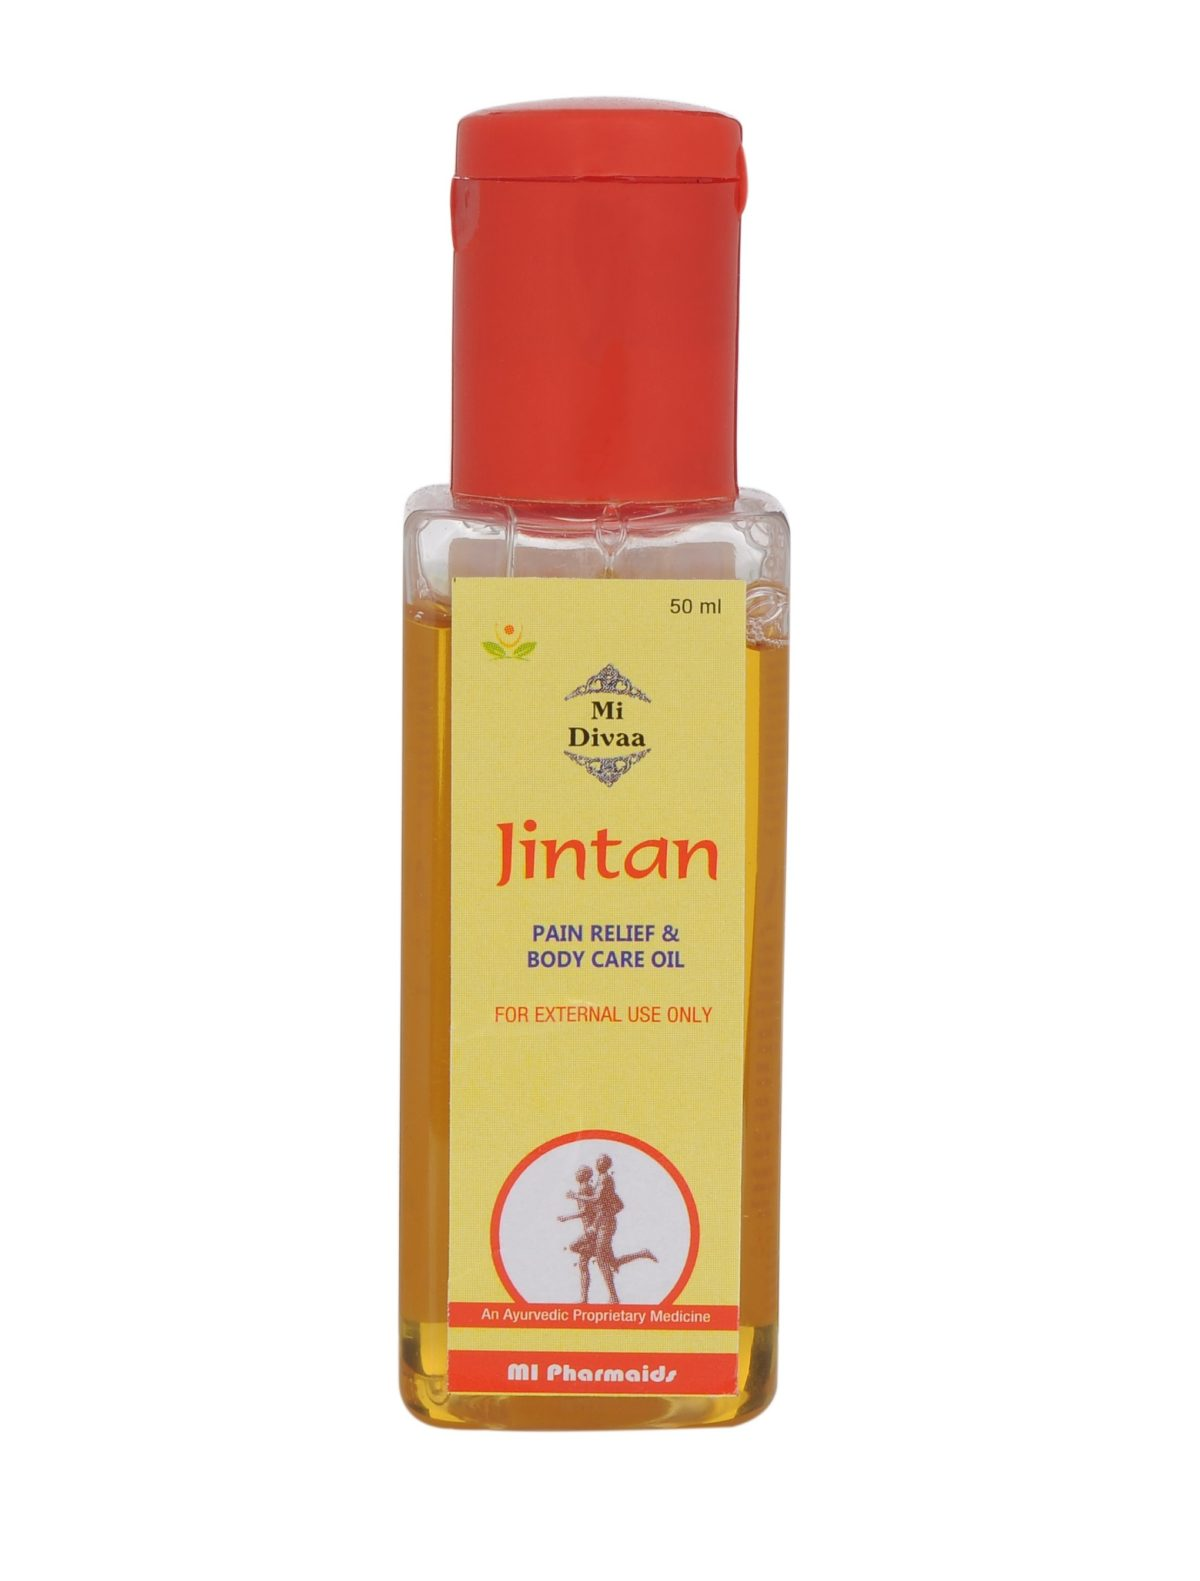 Jintan pain relief and body care Natural oil